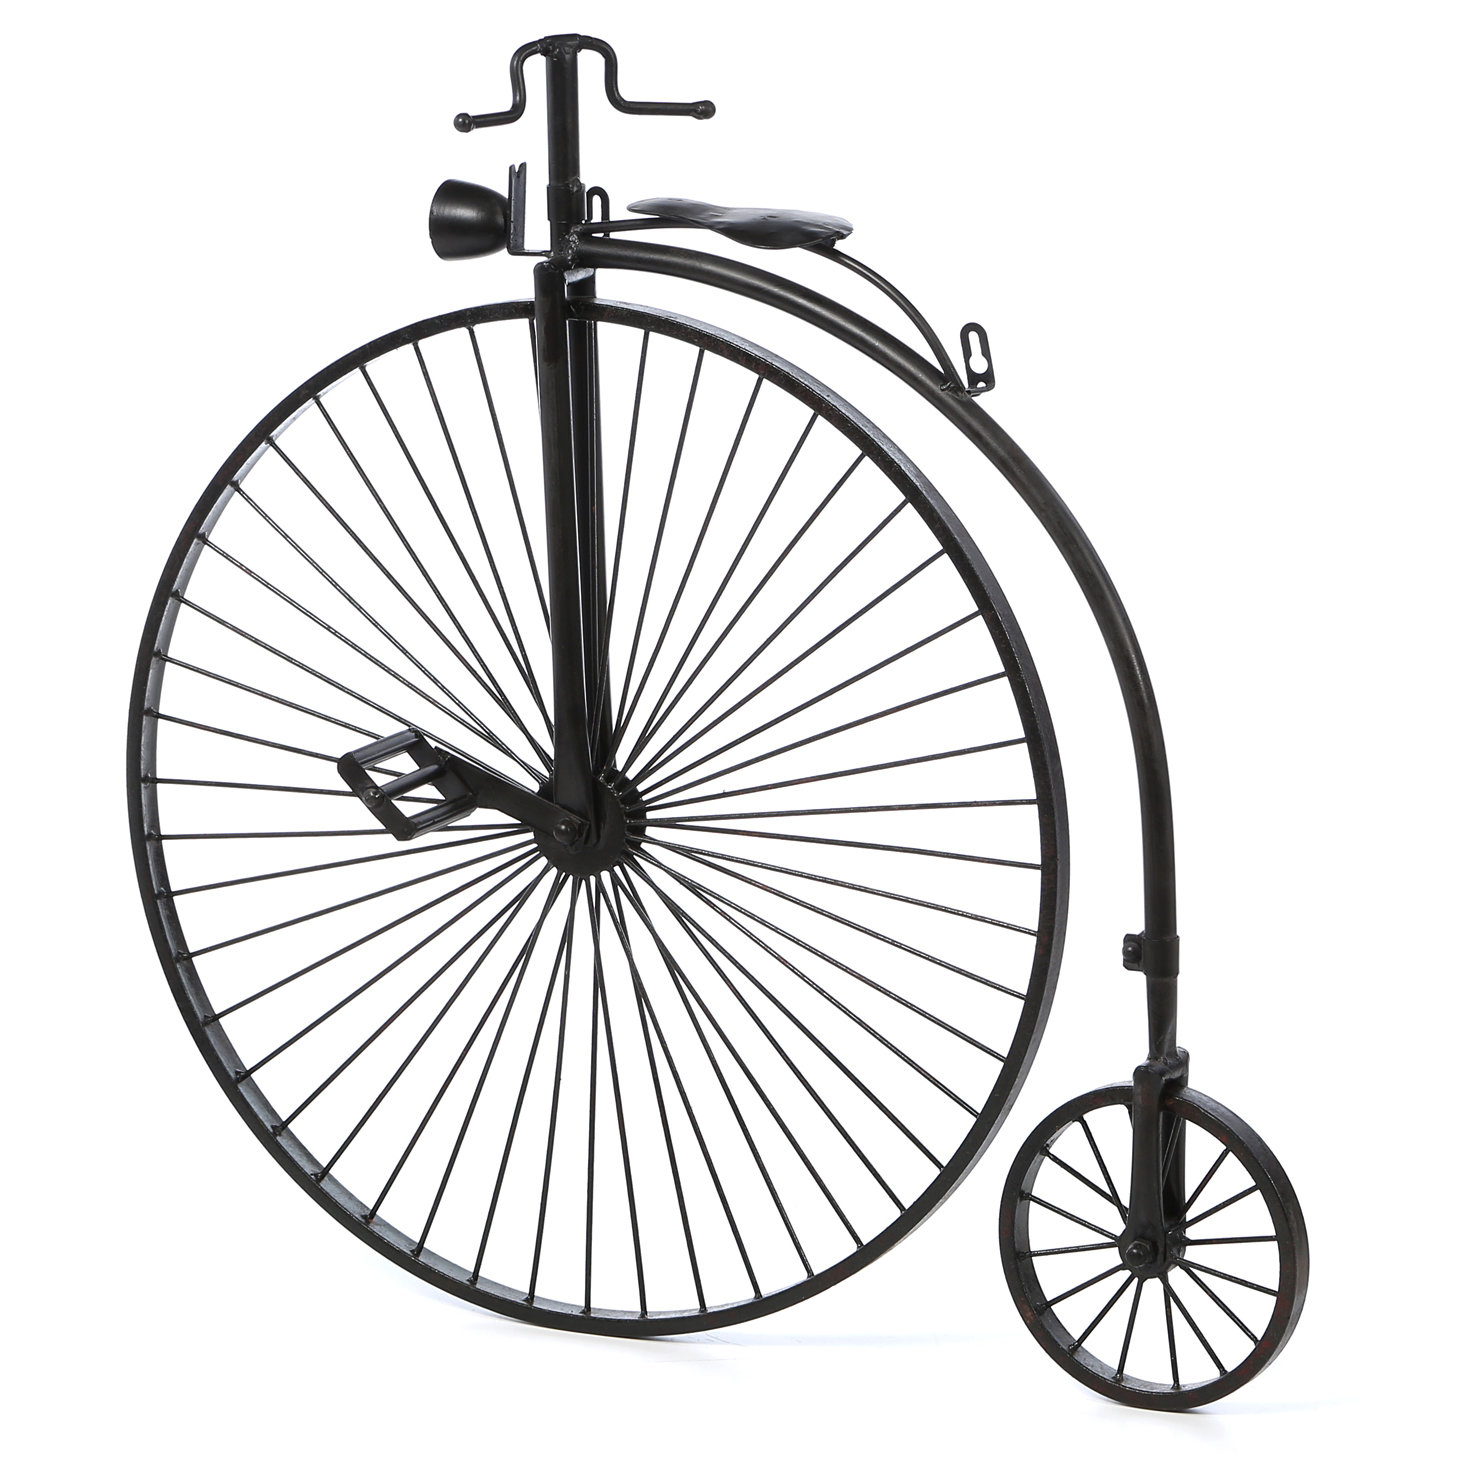 Joss & Main Pertaining To Fashionable Metal Bicycle Wall Decor (View 13 of 20)